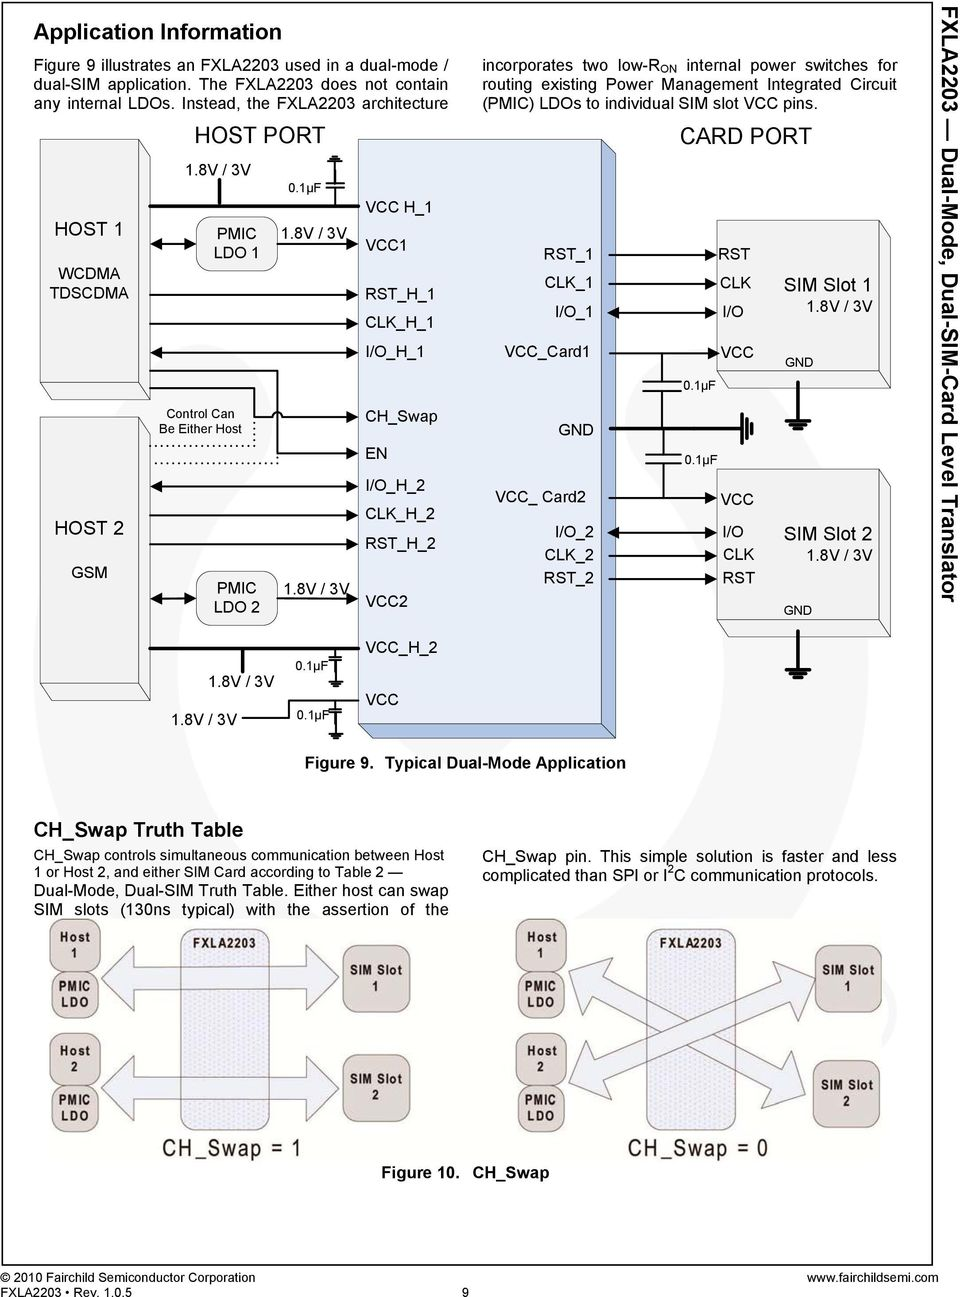 8V / 3V VCC H_1 VCC1 RST_H_1 CLK_H_1 I/O_H_1 CH_Swap EN I/O_H_2 CLK_H_2 RST_H_2 VCC2 incorporates two low-r ON internal power switches for routing existing Power Management Integrated Circuit (PMIC)